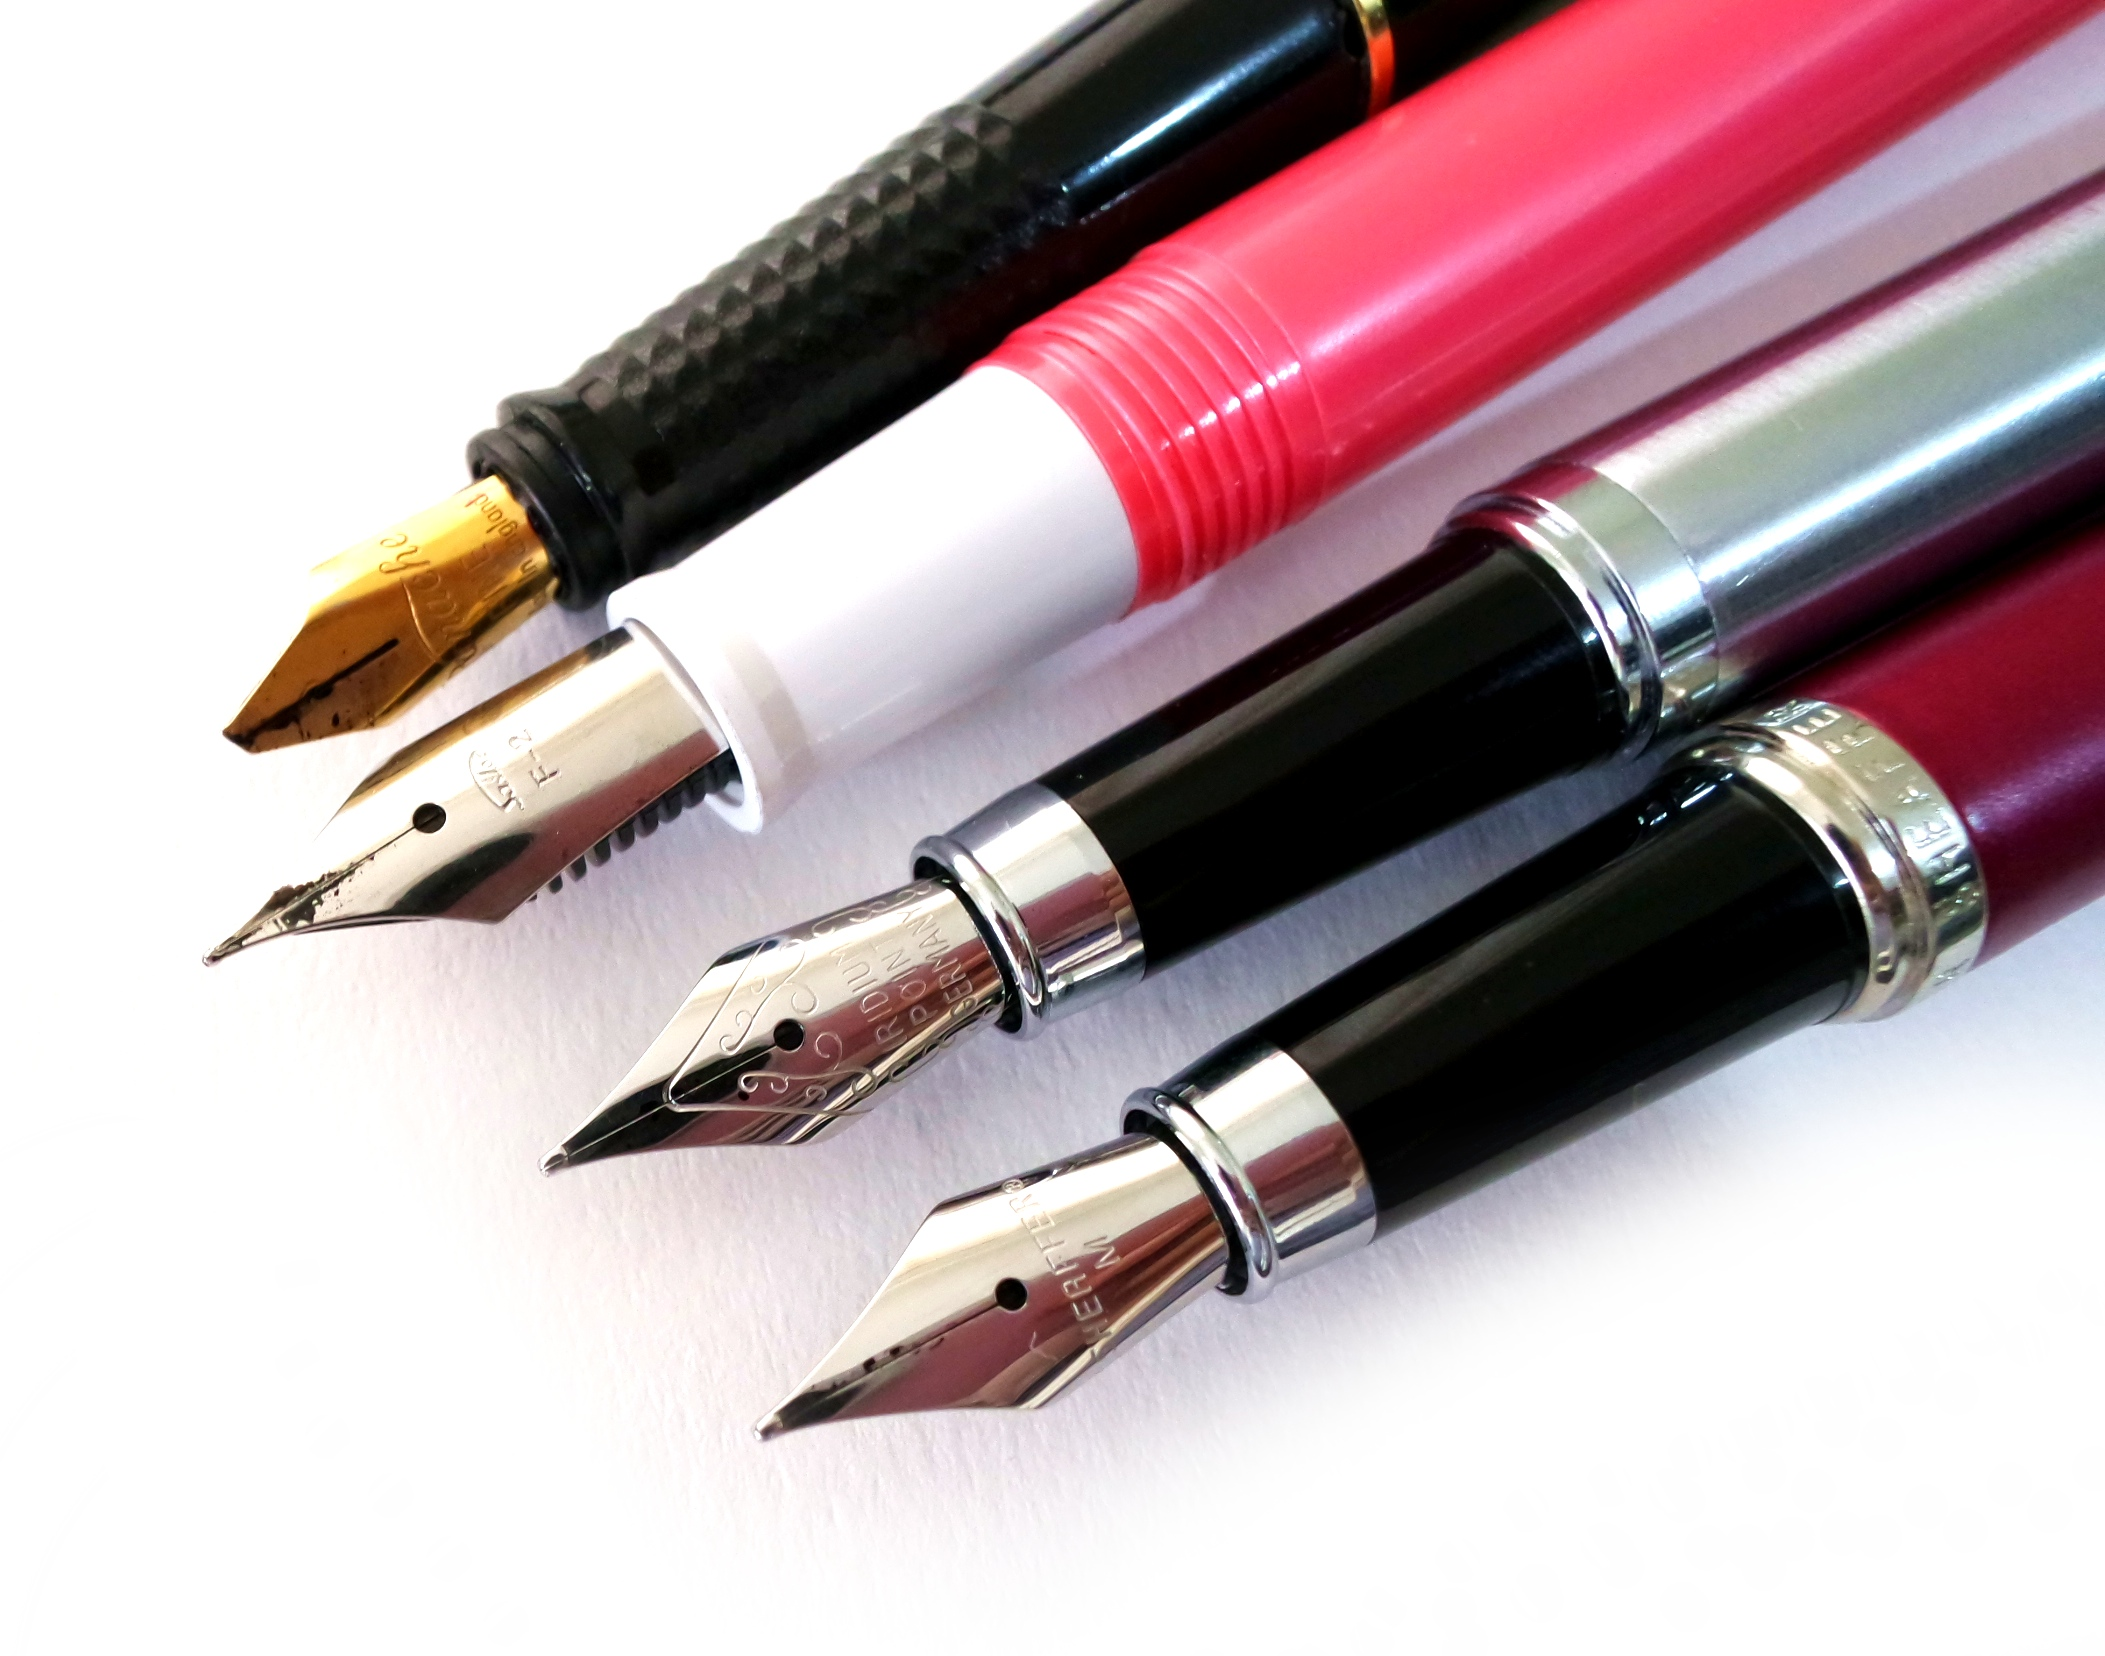 Fountain pen cabal: Panache, Sailor, nameless fountain pen from National Bookstore, and Sheaffer